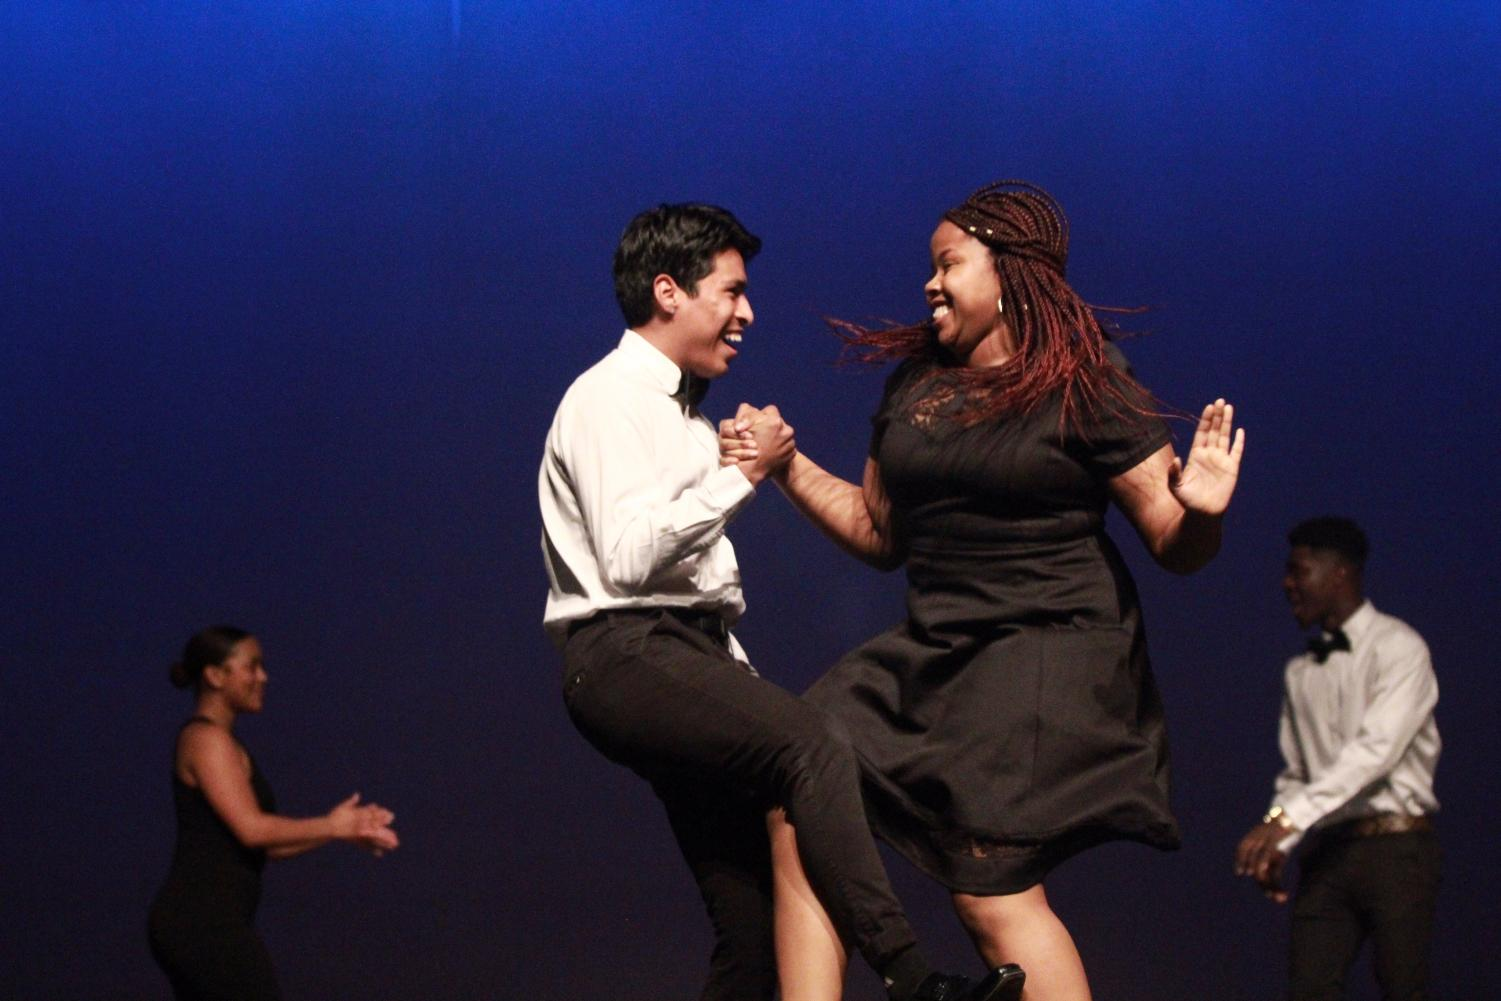 Seniors Joseph Alminagor and Sandra Ogbuokiri dance during the opening scene of the Mr. Watkins Mill contest.